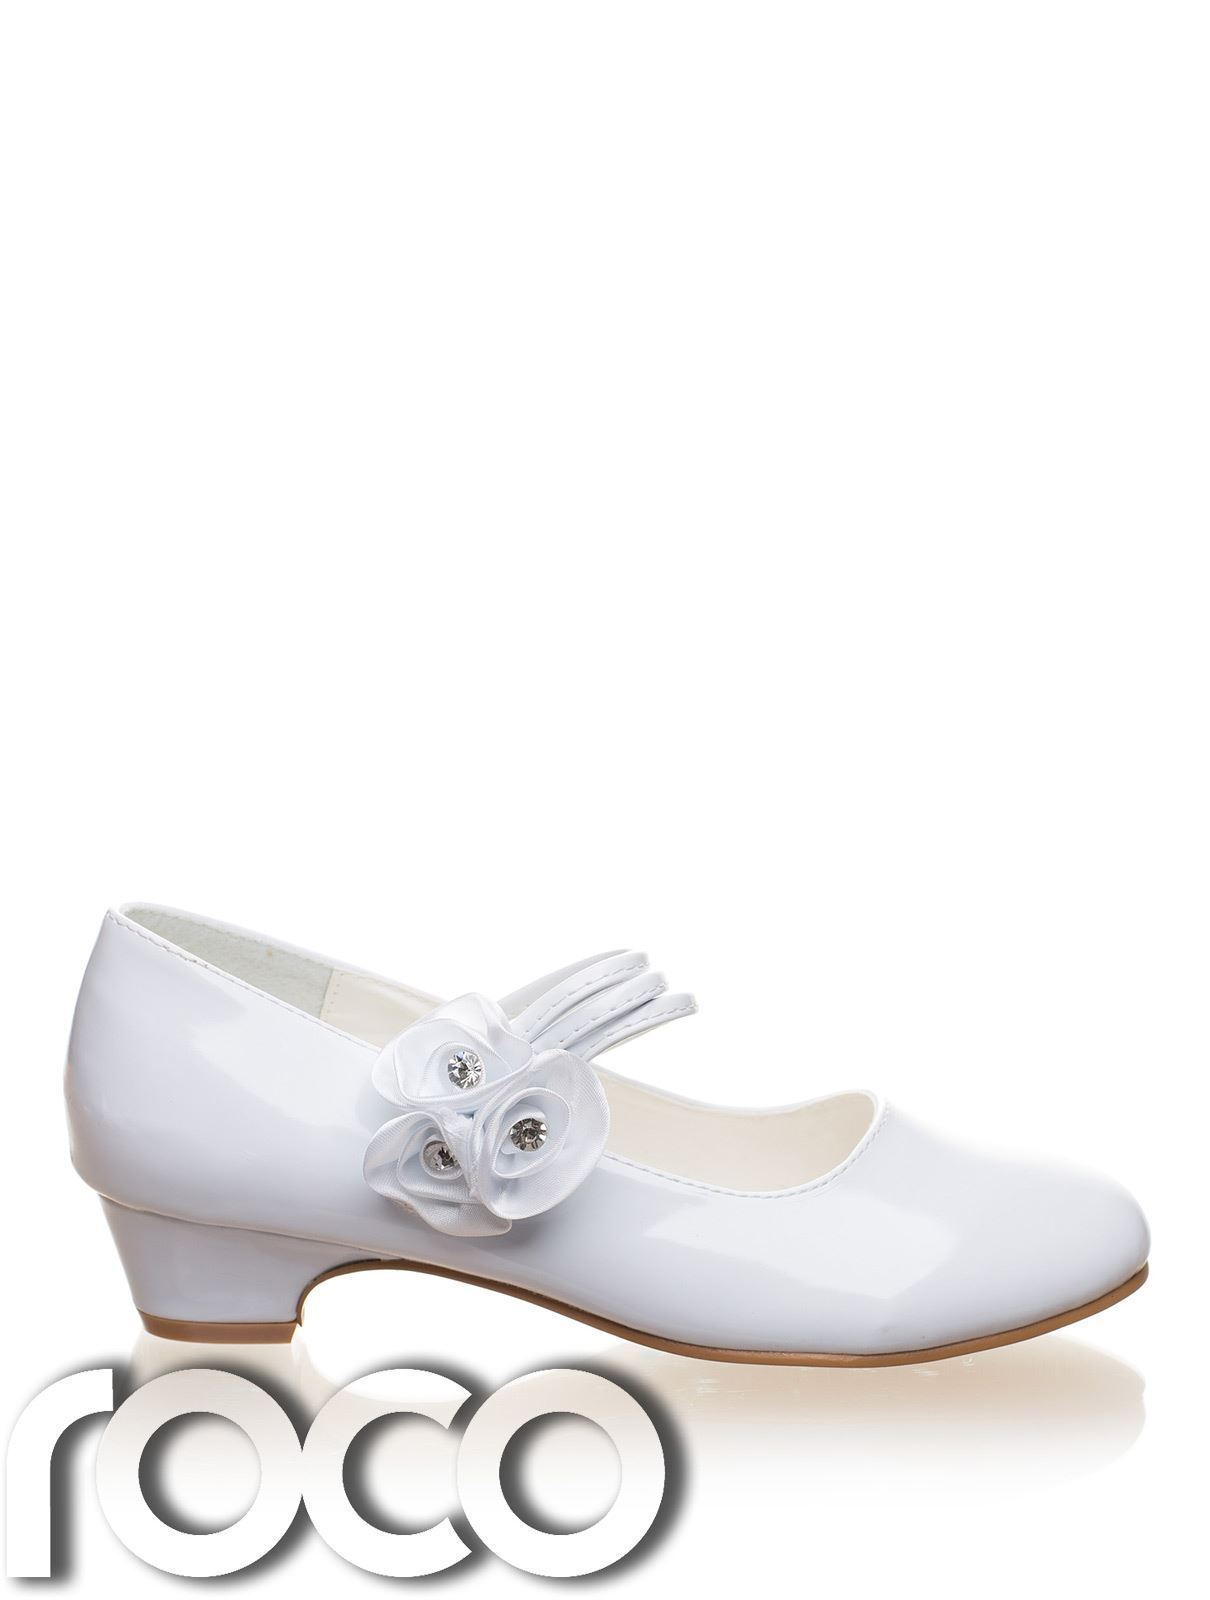 Girls White Shoes Communion Shoes Prom Shoes Flower Girl Shoes